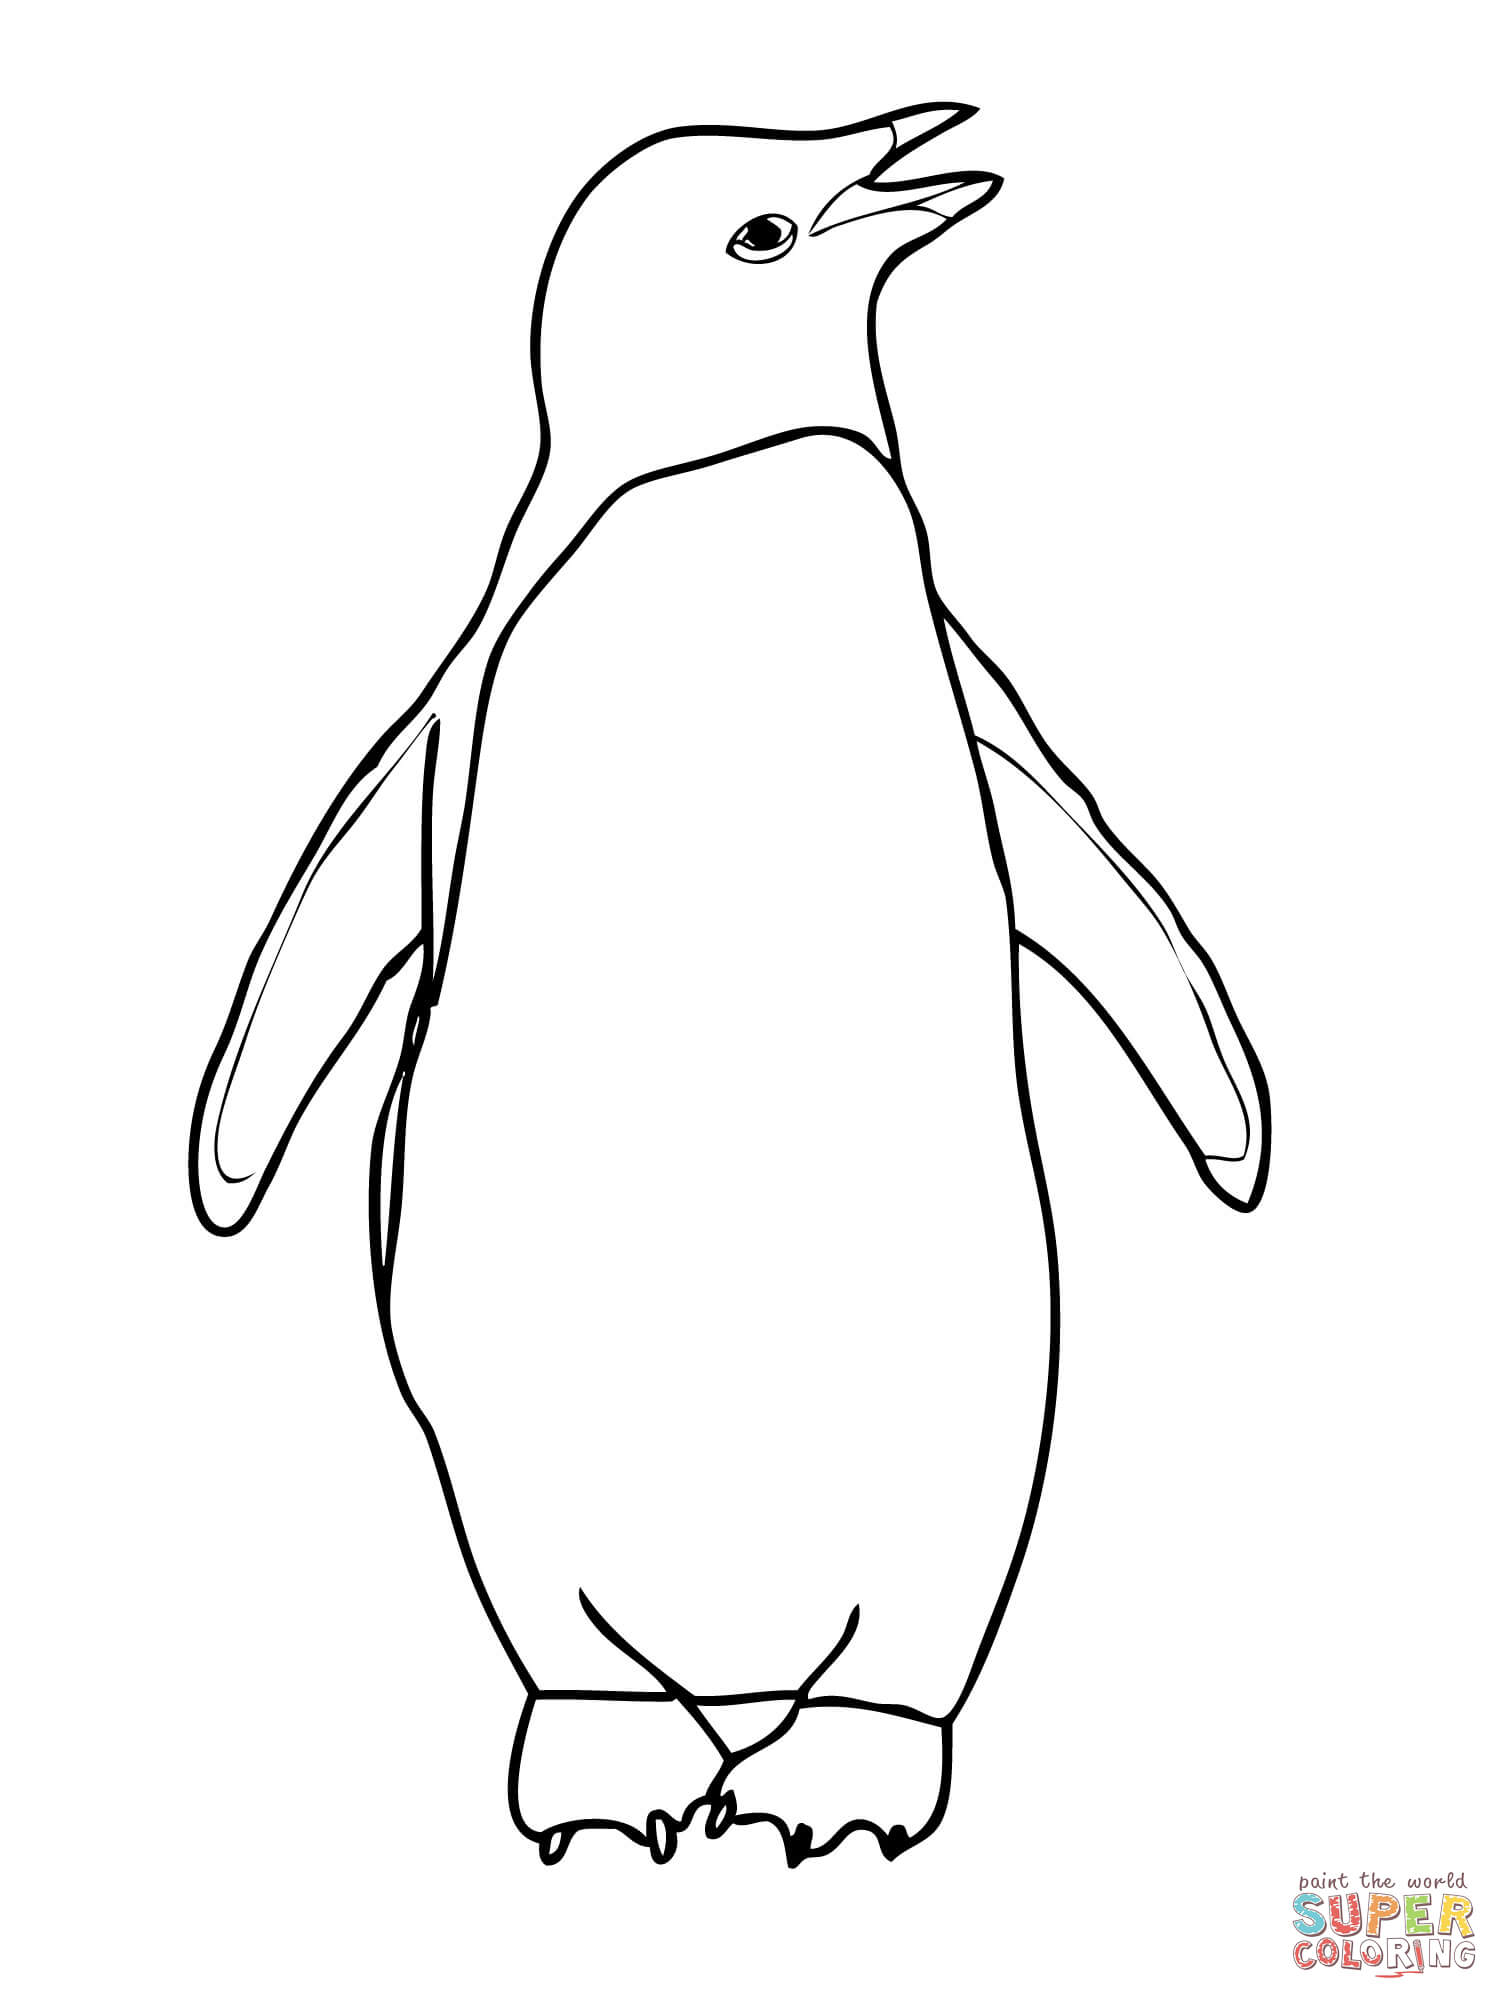 Color clipart penguin Drawings coloring Penguin Penguin coloring